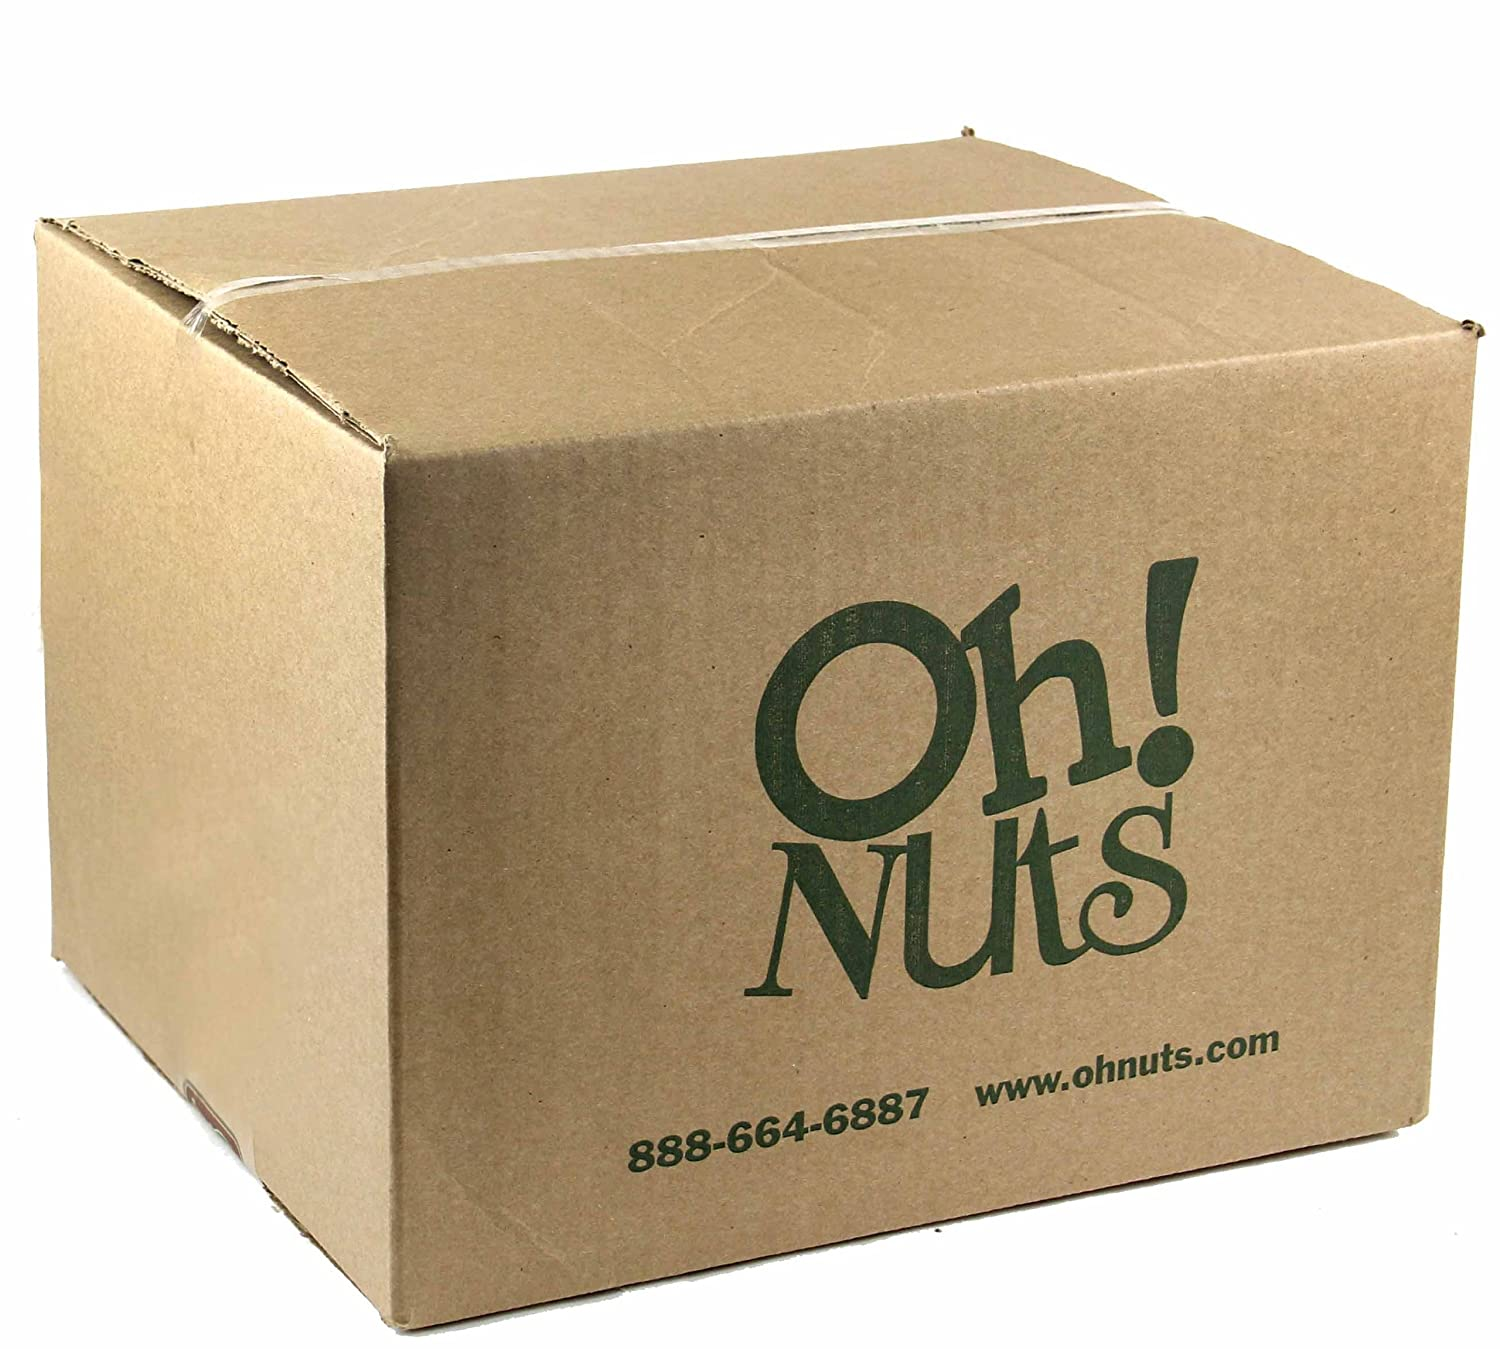 Cashews Oven Roasted Finely Salted, Dry Roasted Salted Cashews - Oh! Nuts (25 LB Dry Roasted Salted Cashews)